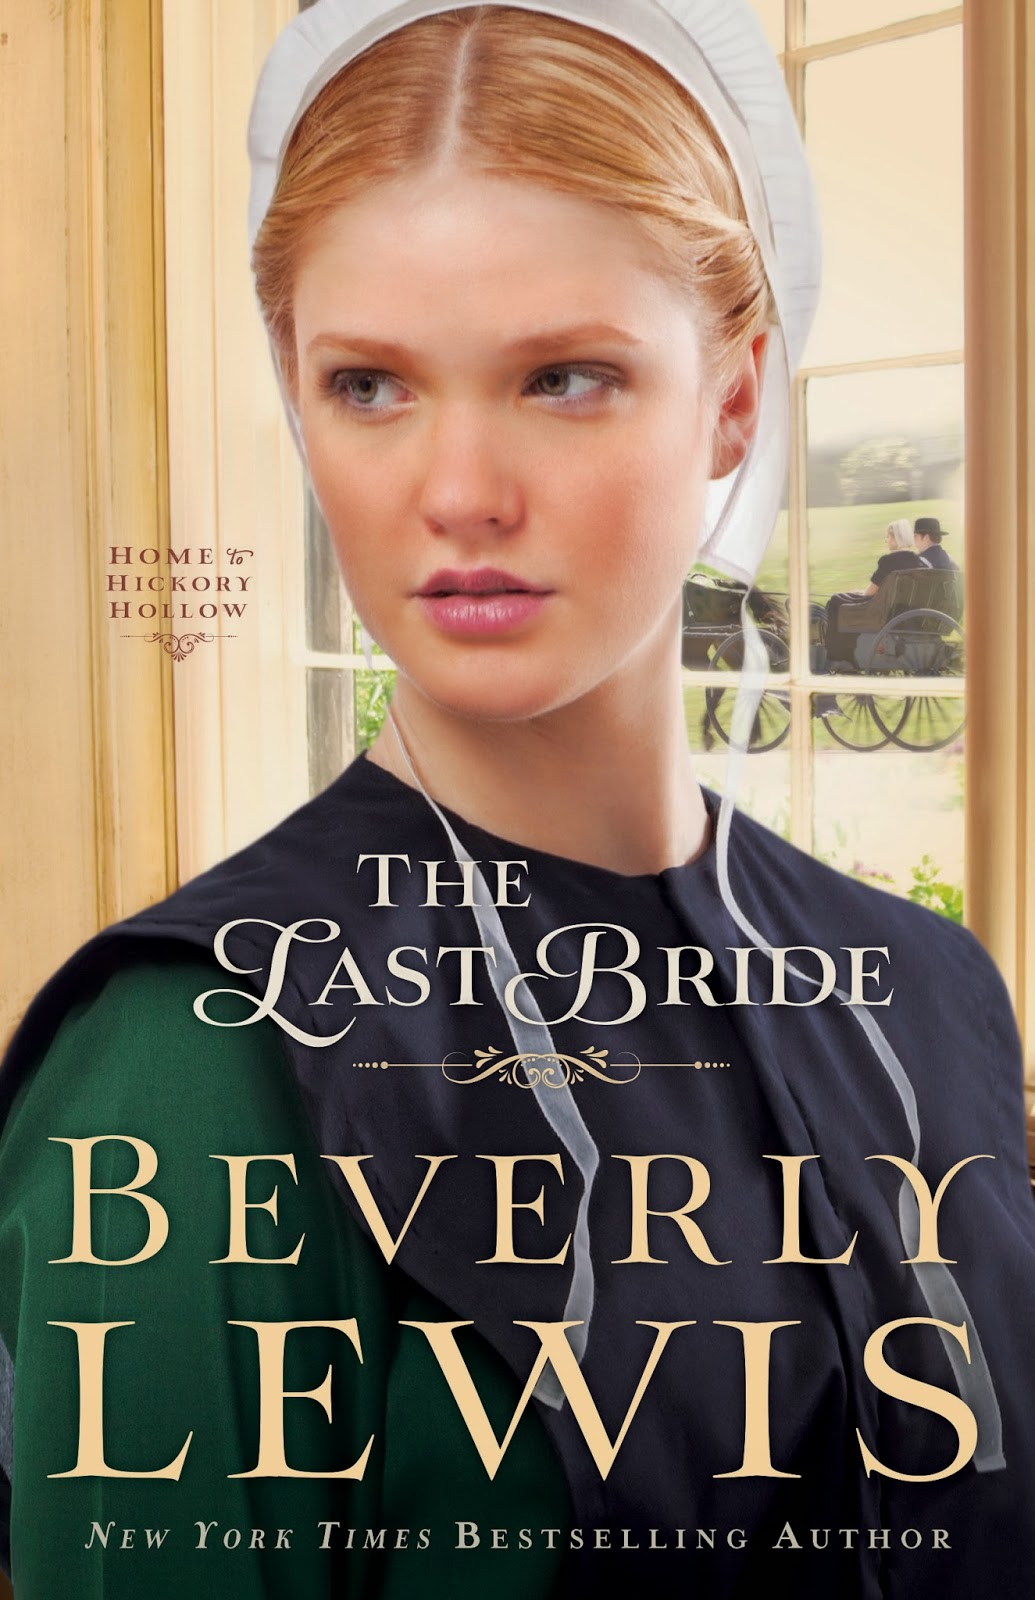 http://bakerpublishinggroup.com/books/the-last-bride/349340